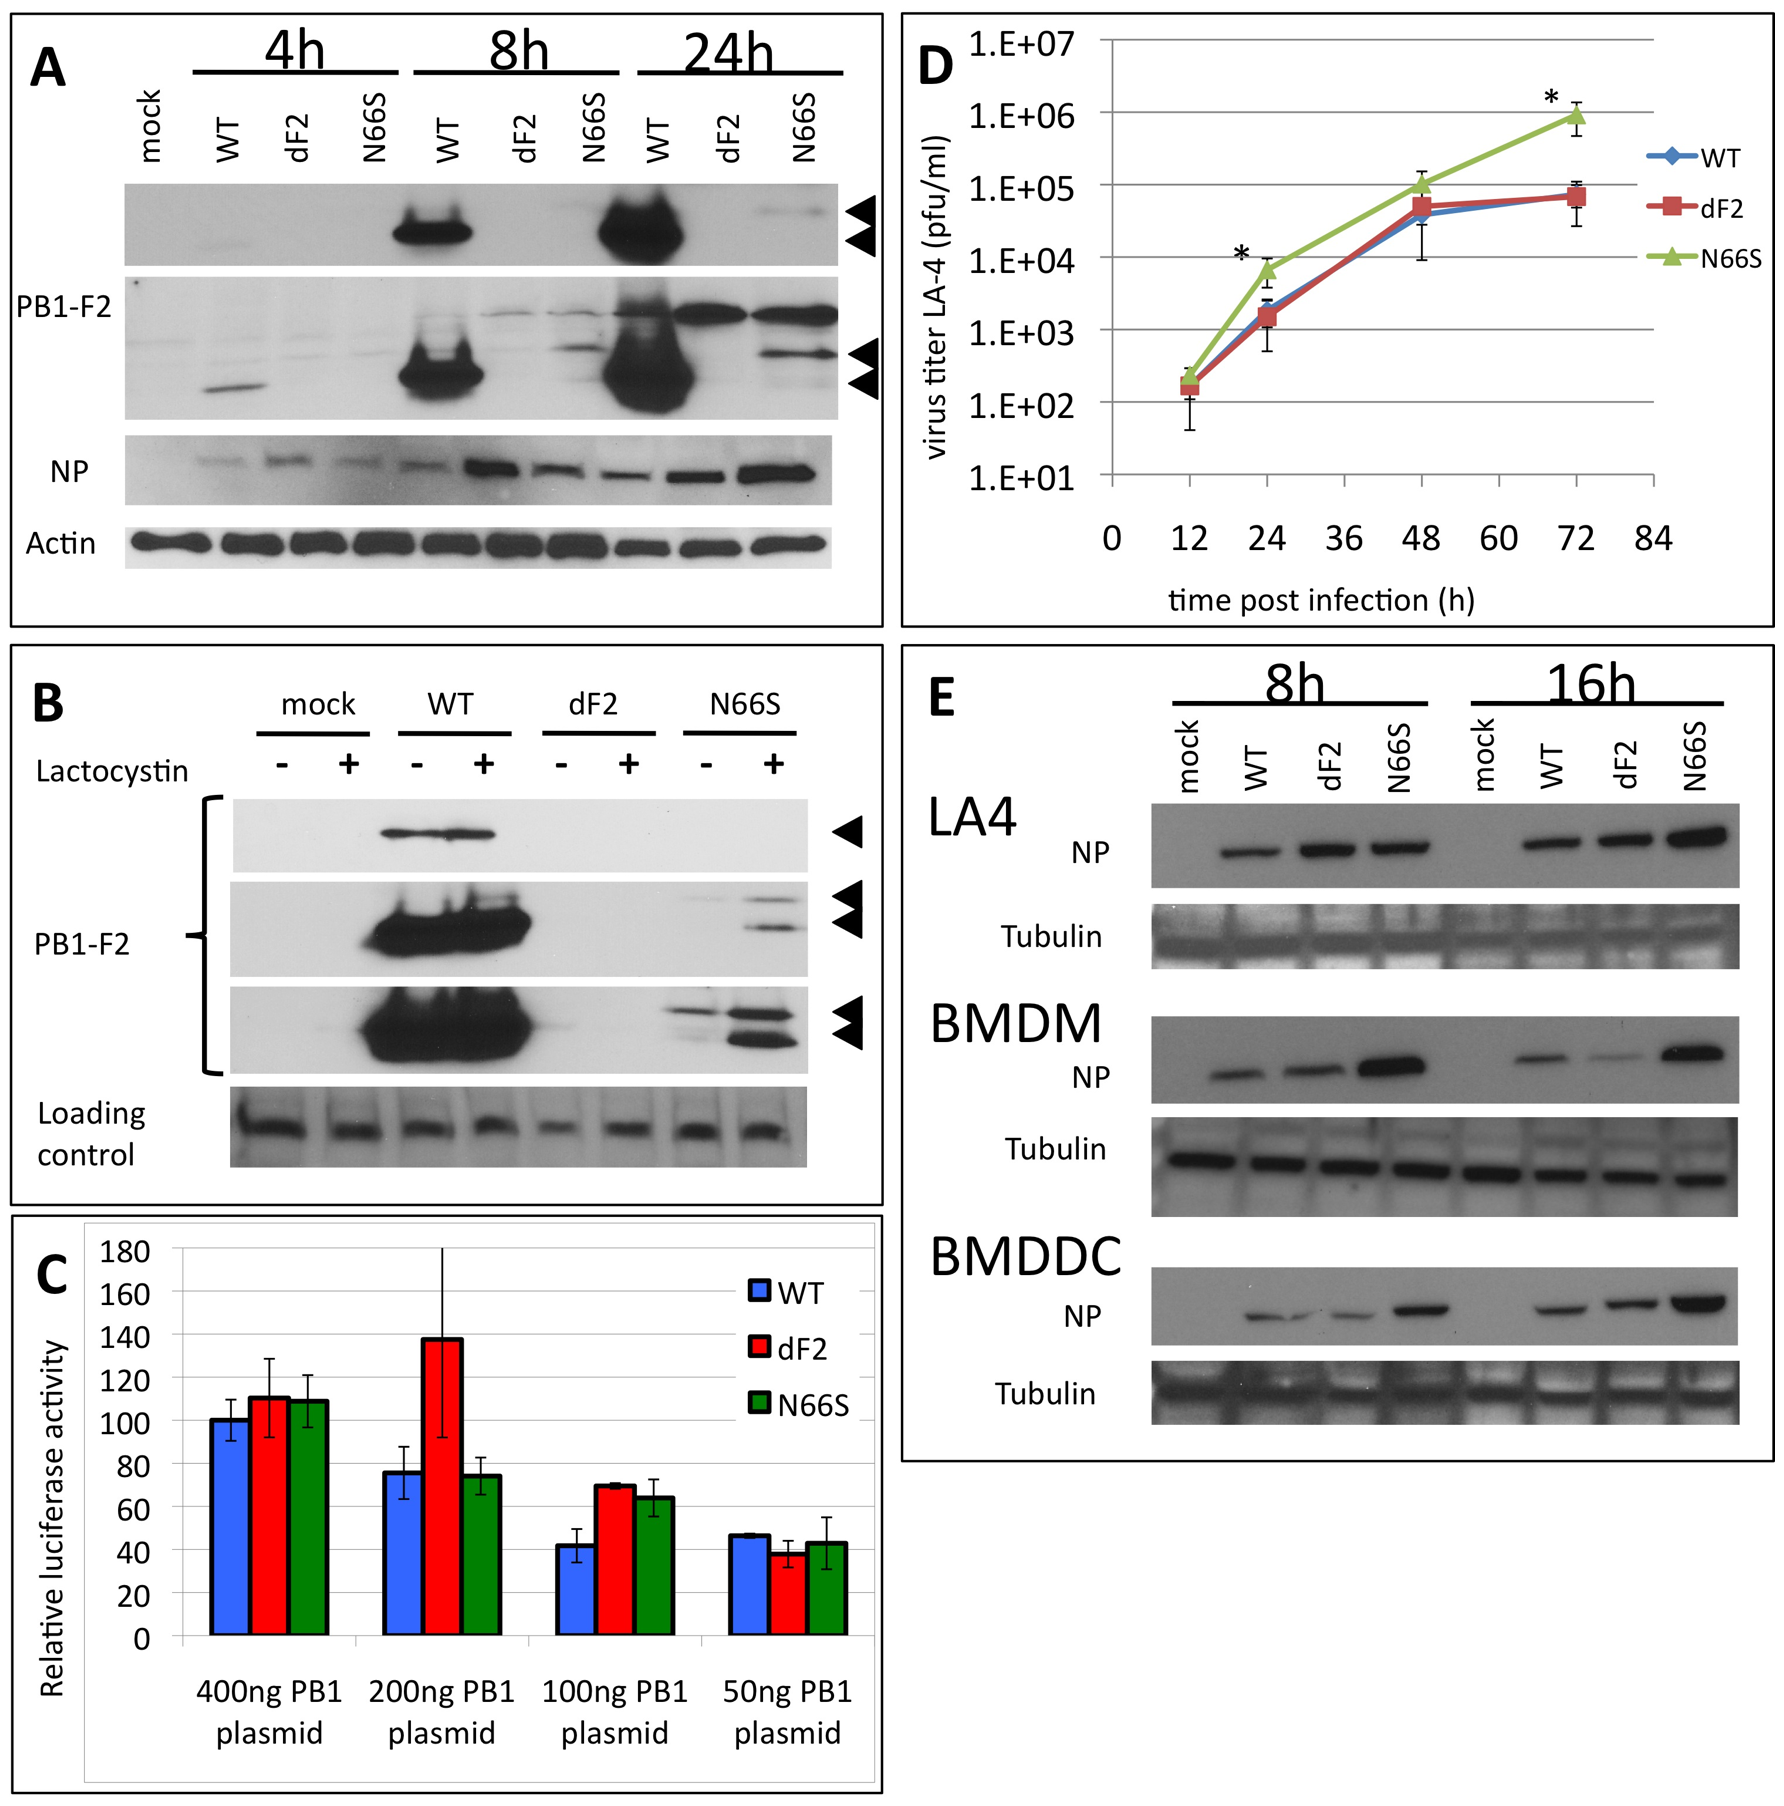 Effects of PB1-F2 expression on replication of A/Viet Nam/1203/2004 in murine cells in vitro.